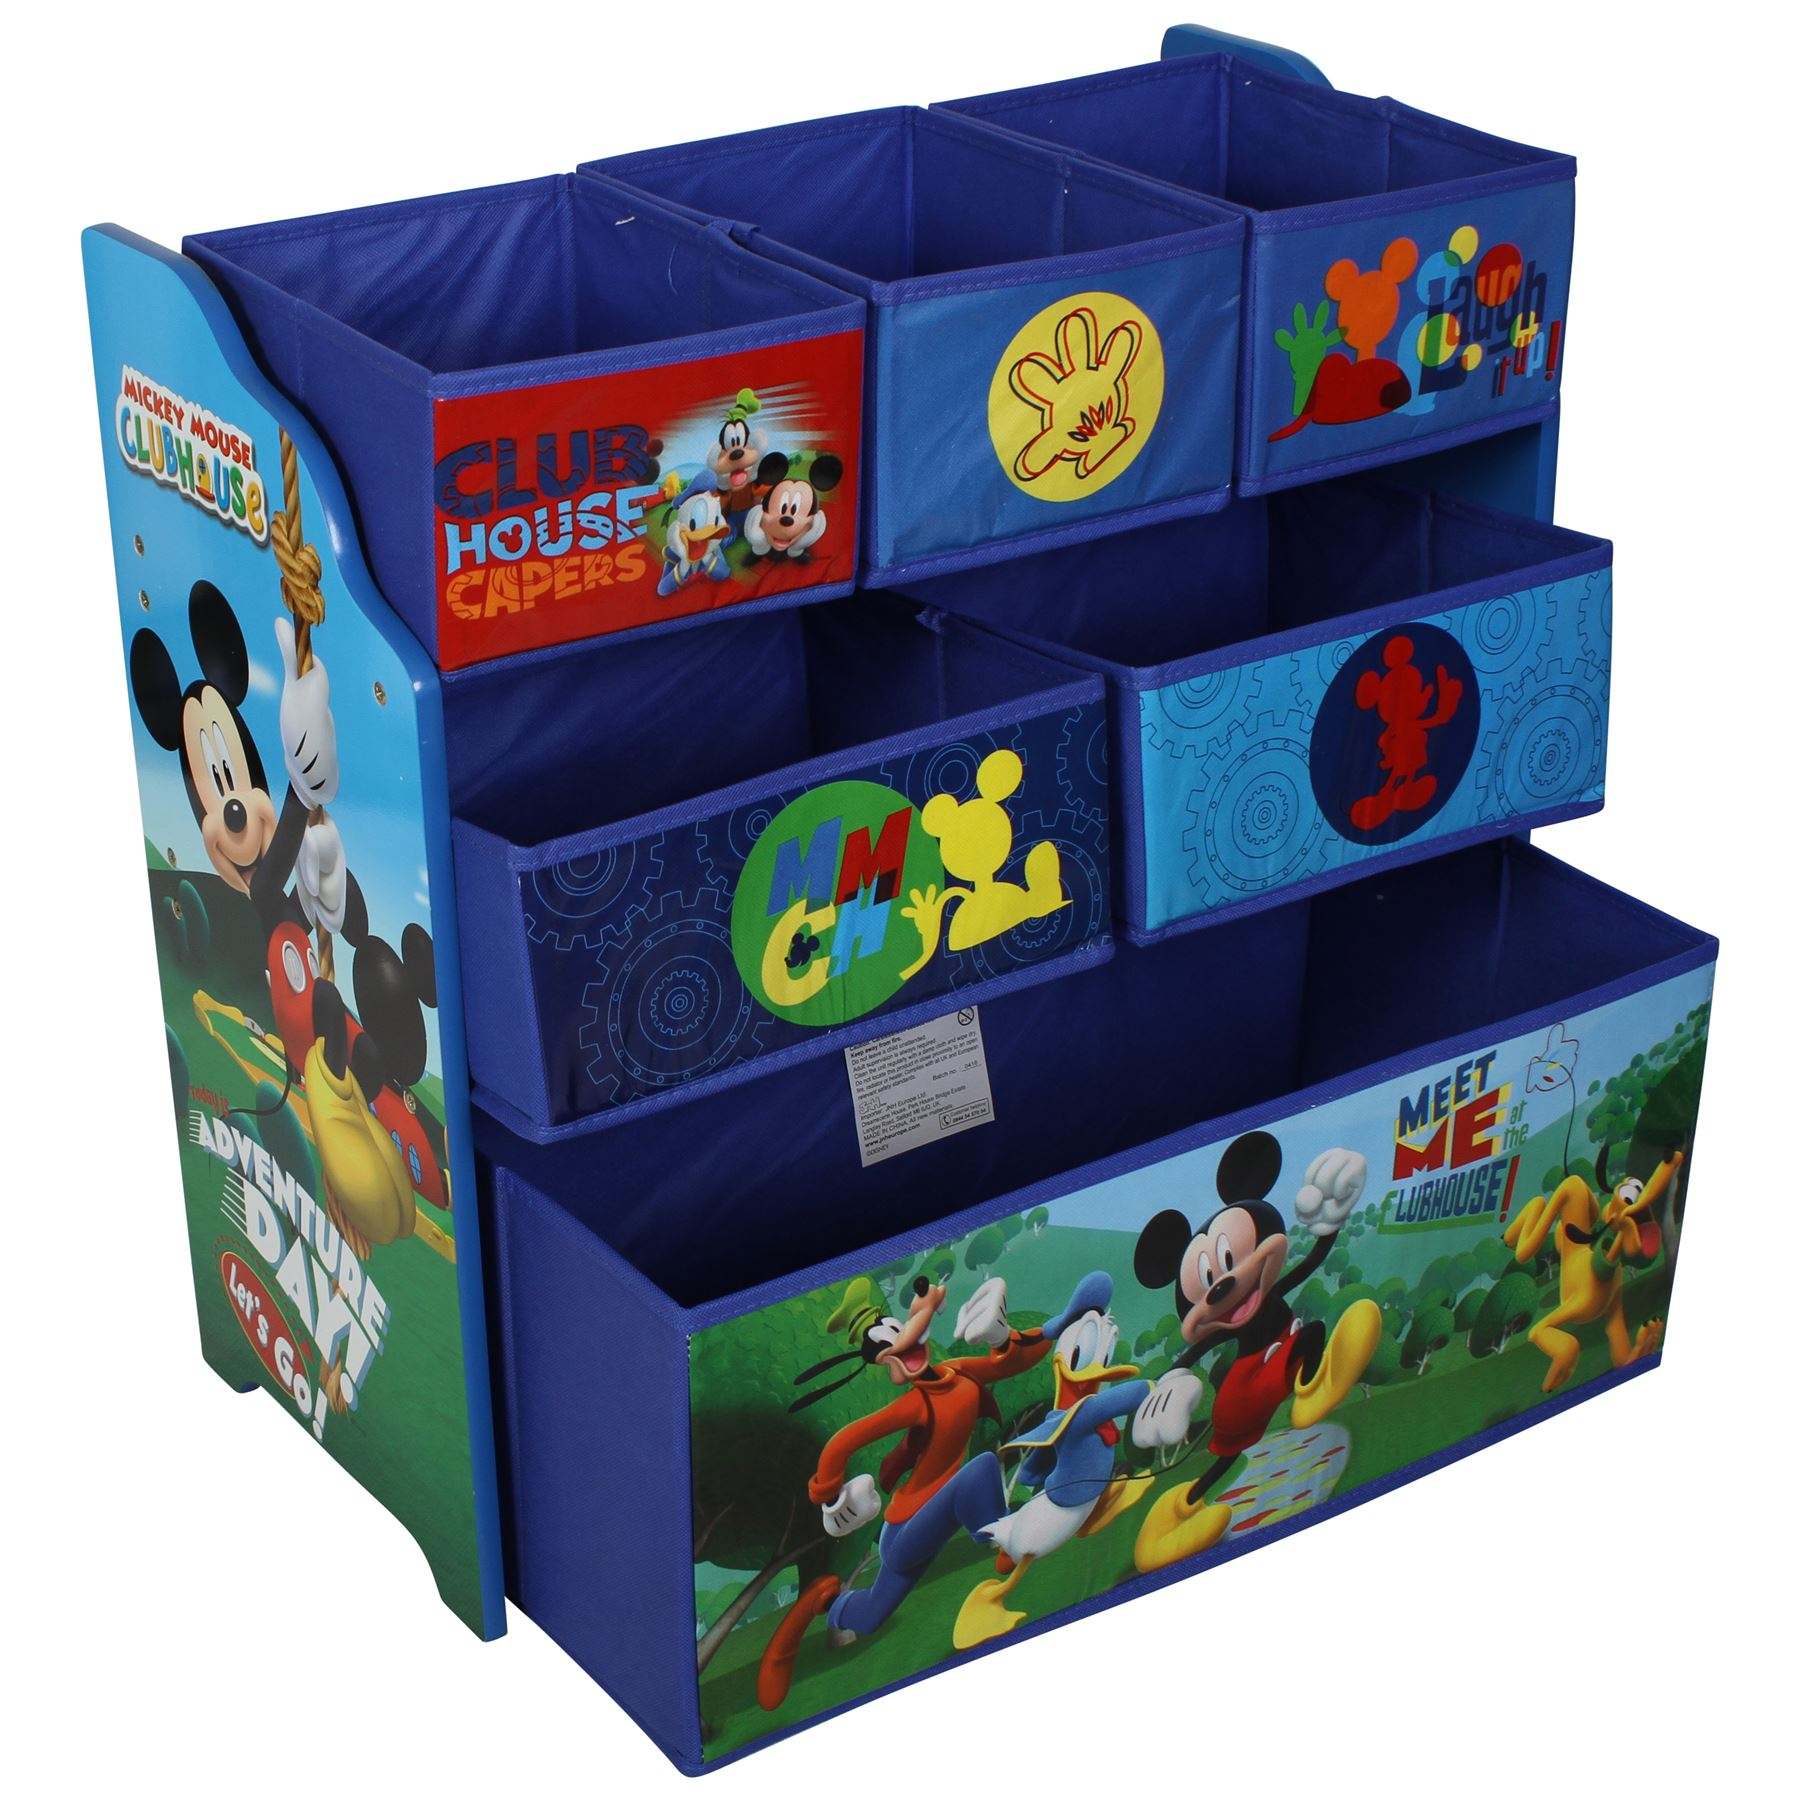 Disney Mickey Mouse Wooden Bedroom & Playroom Furniture